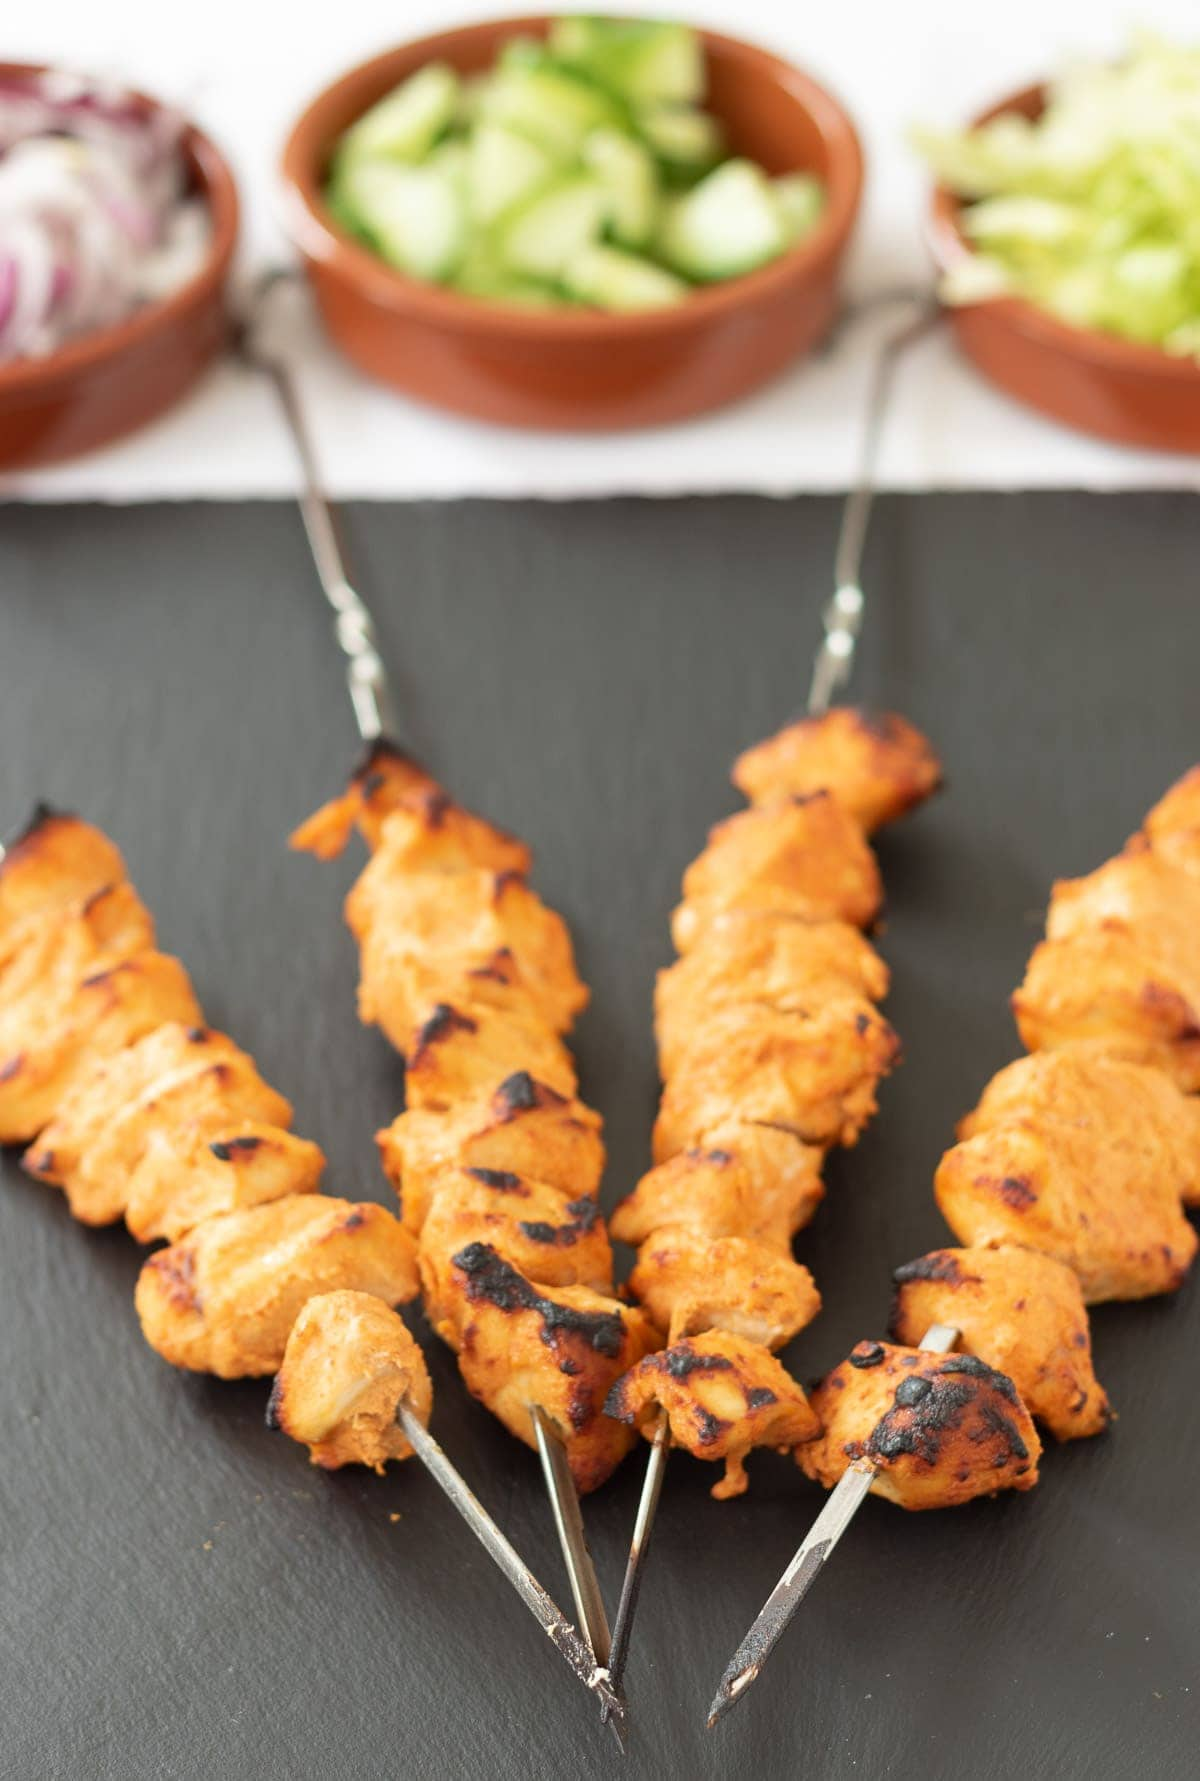 Four grilled cooked chicken tikka skewers.